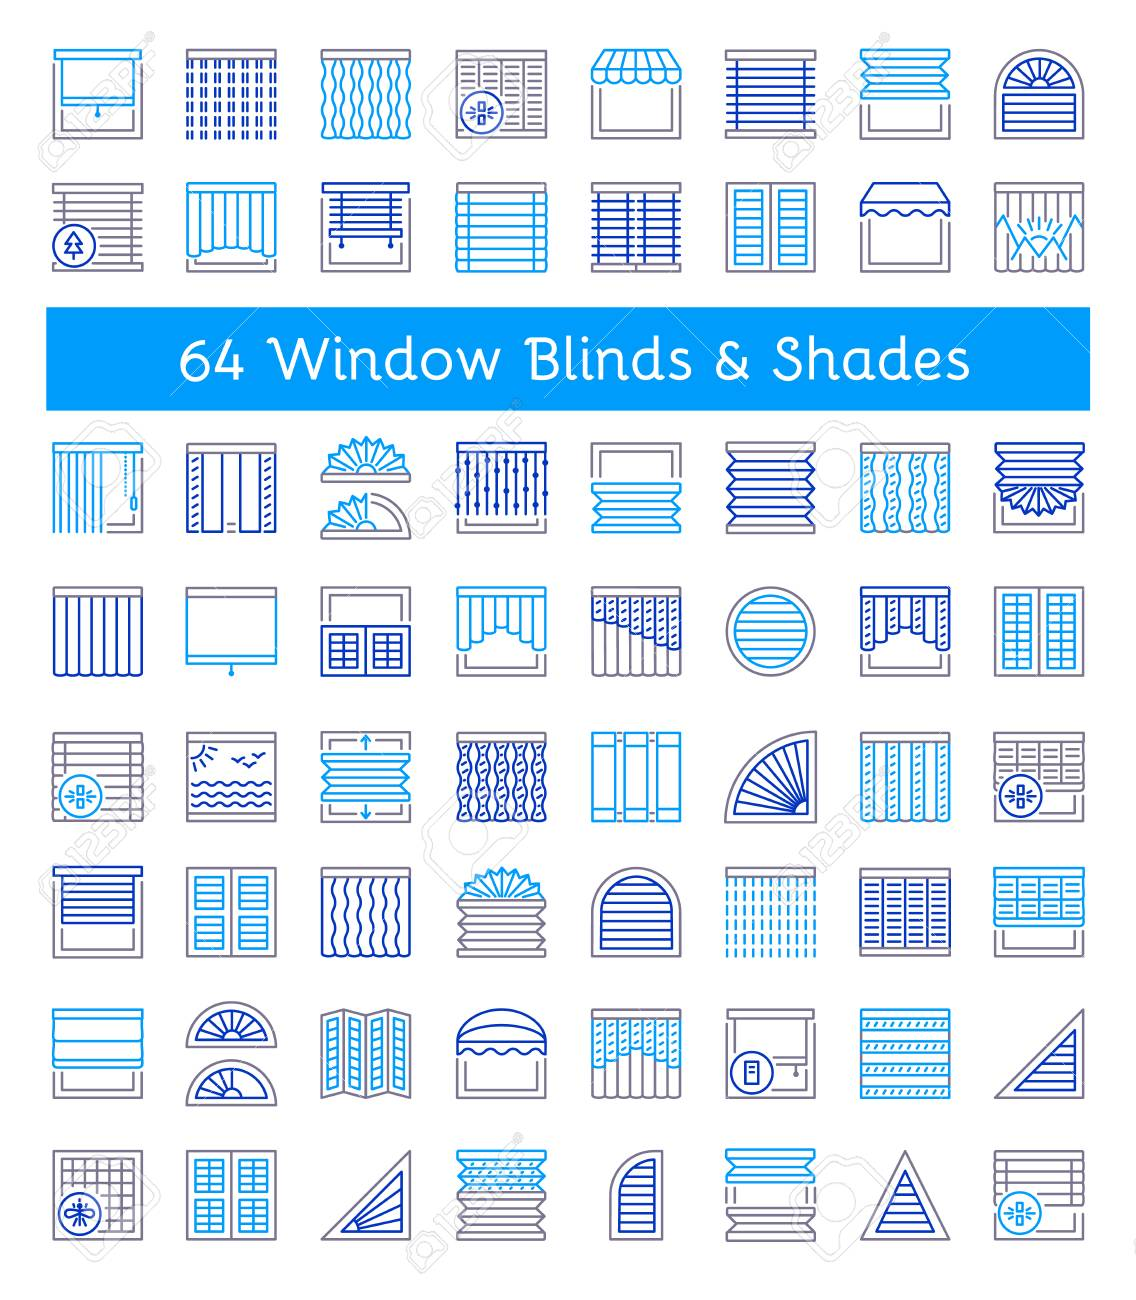 Blinds & Shades. Sun protection. Room darkening & light blocking jalousies. Interior shutters & panel curtains. Home decor elements. Window coverings. Line icon collection. - 106229308